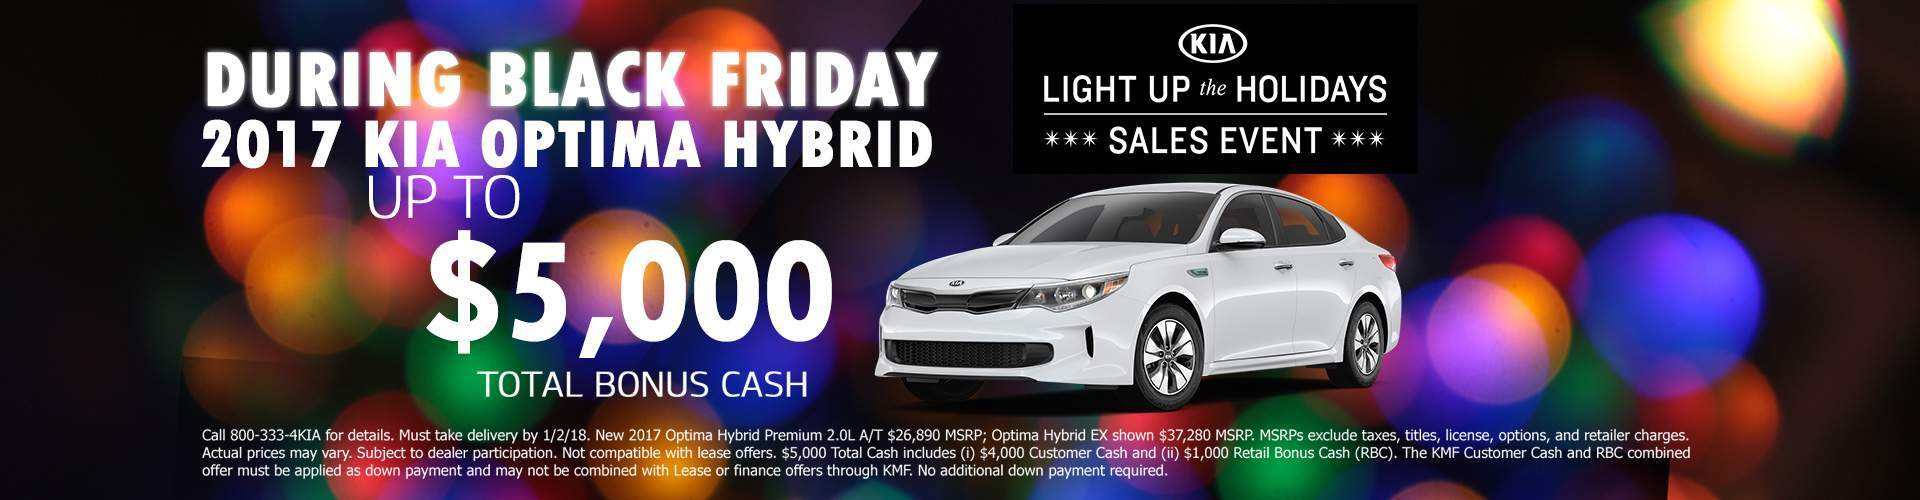 Black Friday 2017 KIA Optima Hybrid